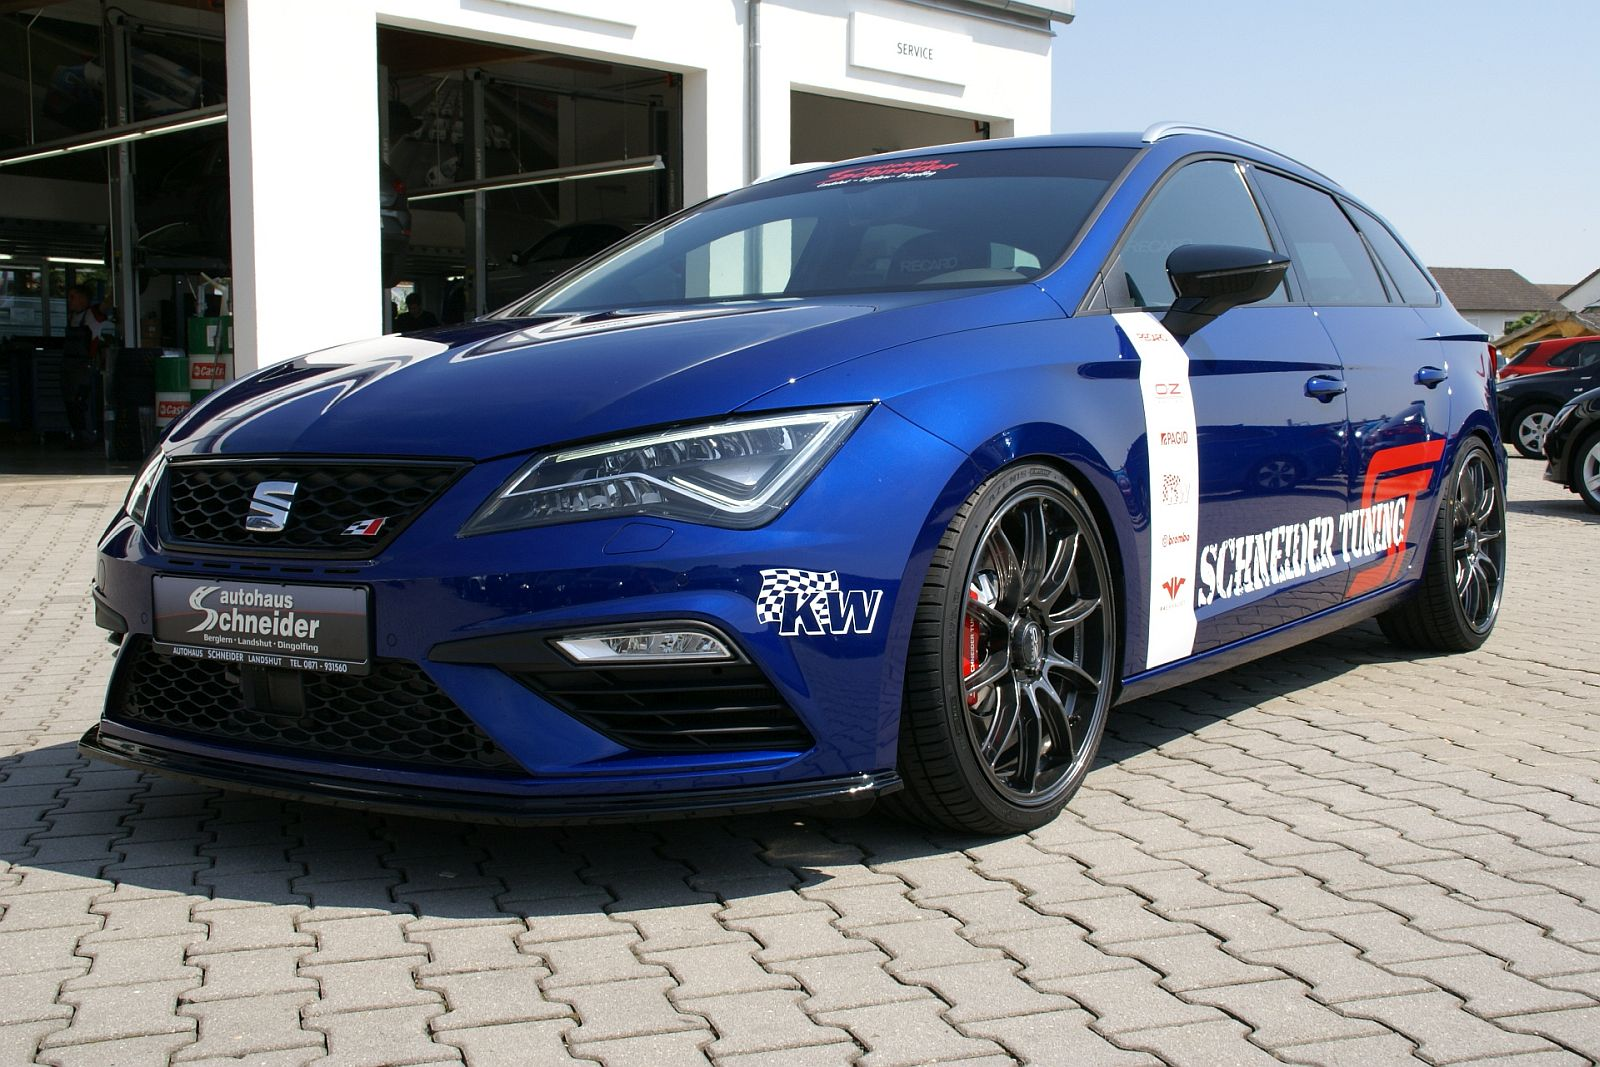 seat leon cupra allrad st400 r schneider tuning. Black Bedroom Furniture Sets. Home Design Ideas